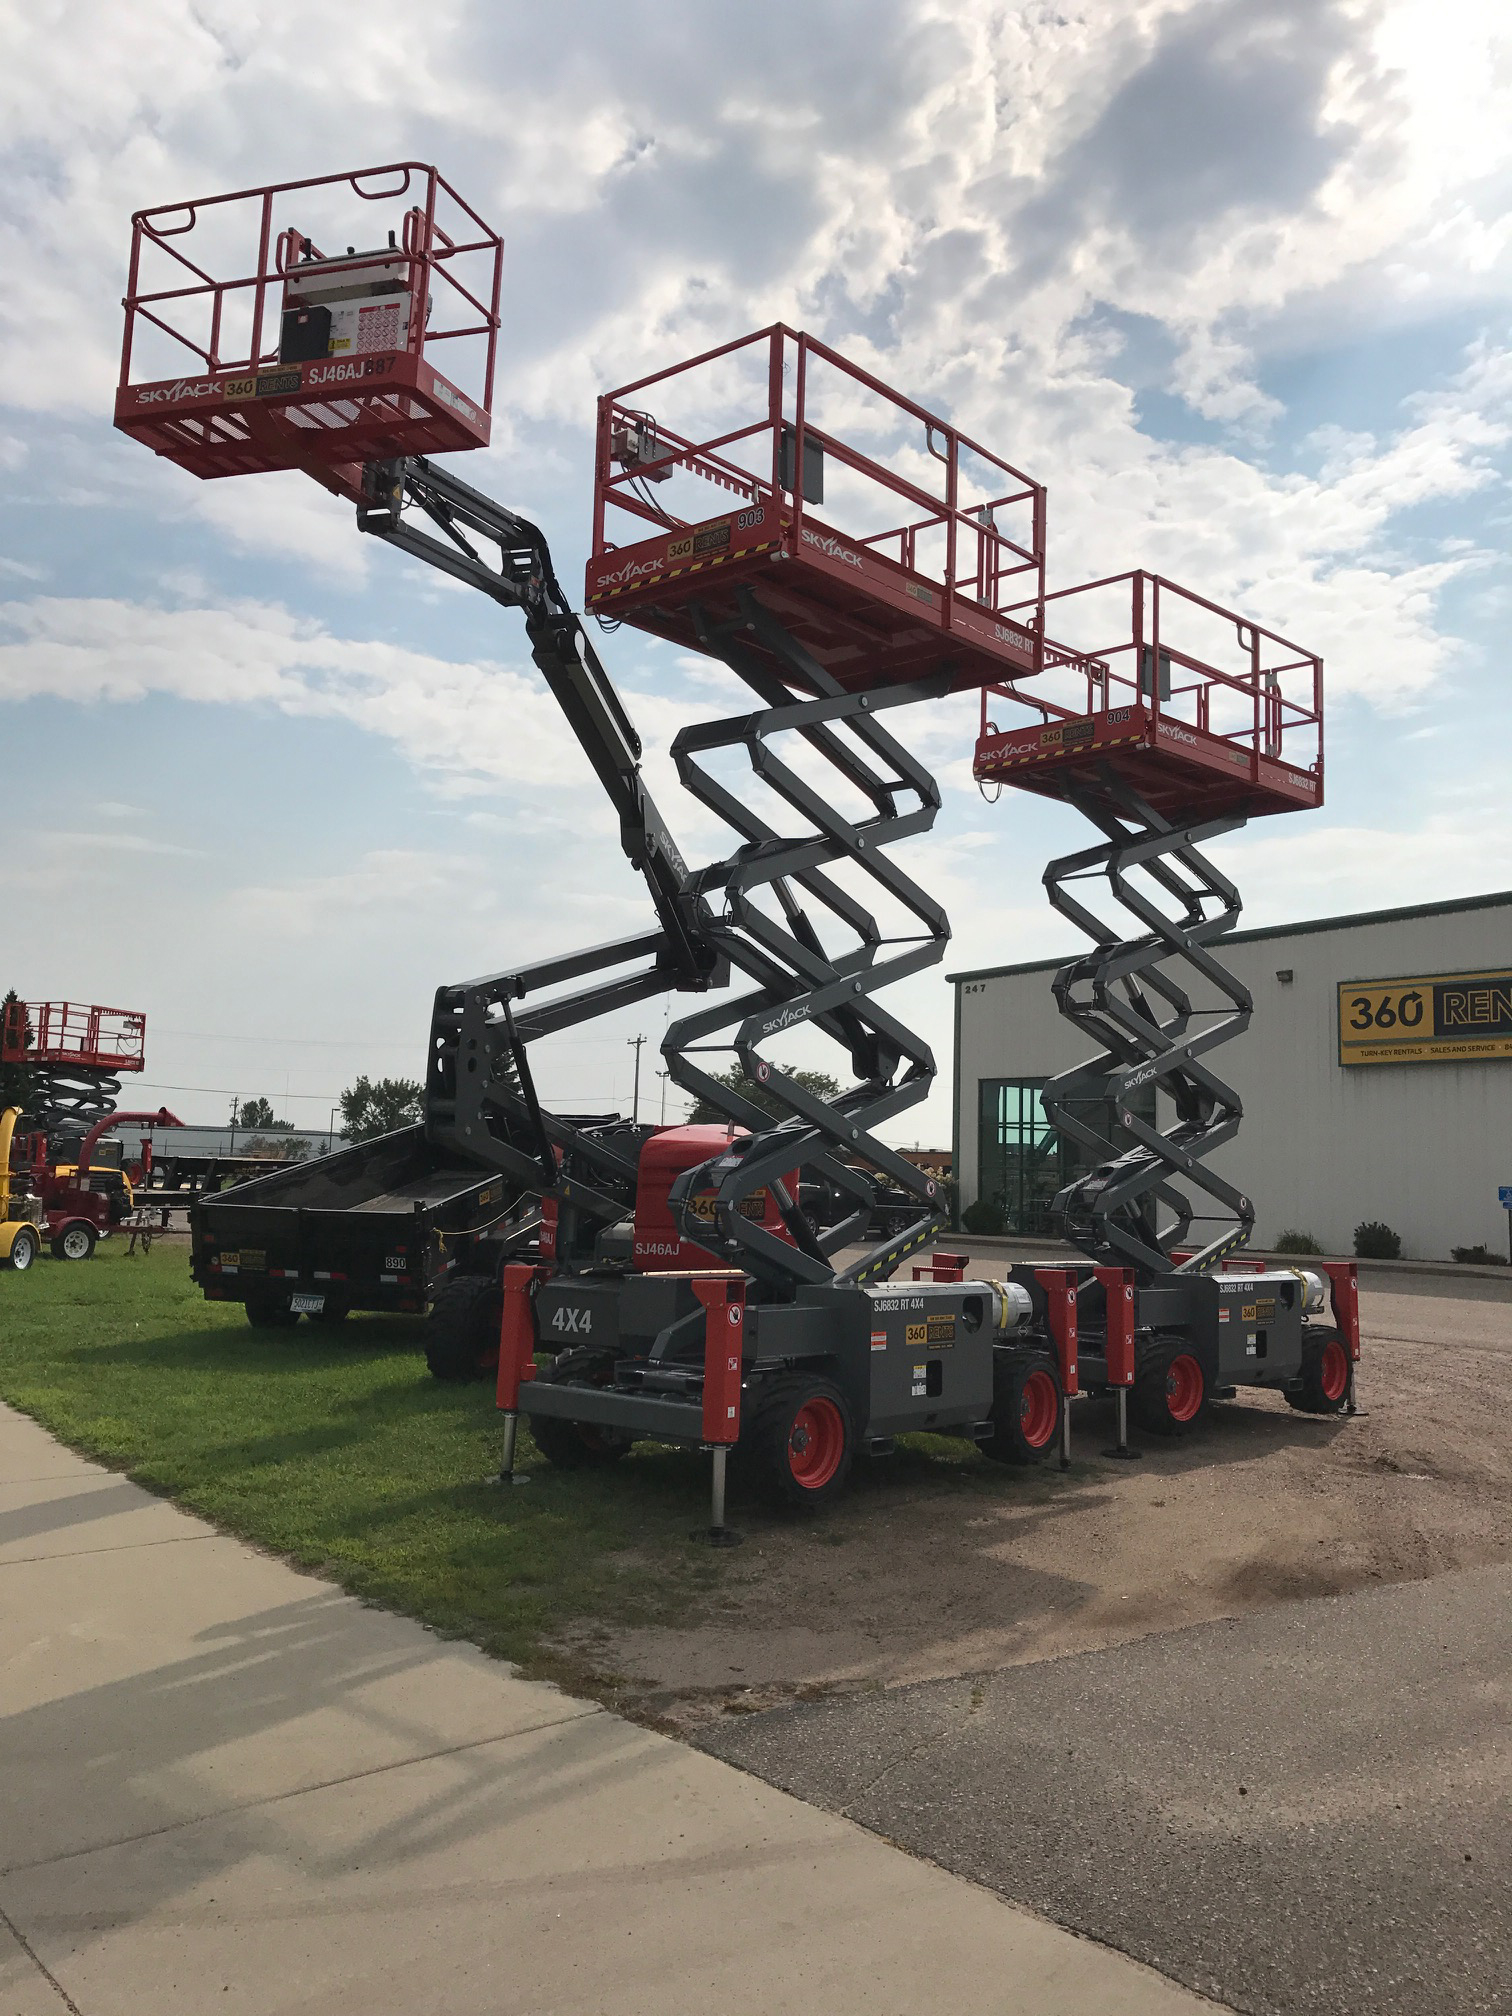 SkyJack Lift rented from 360 Rents